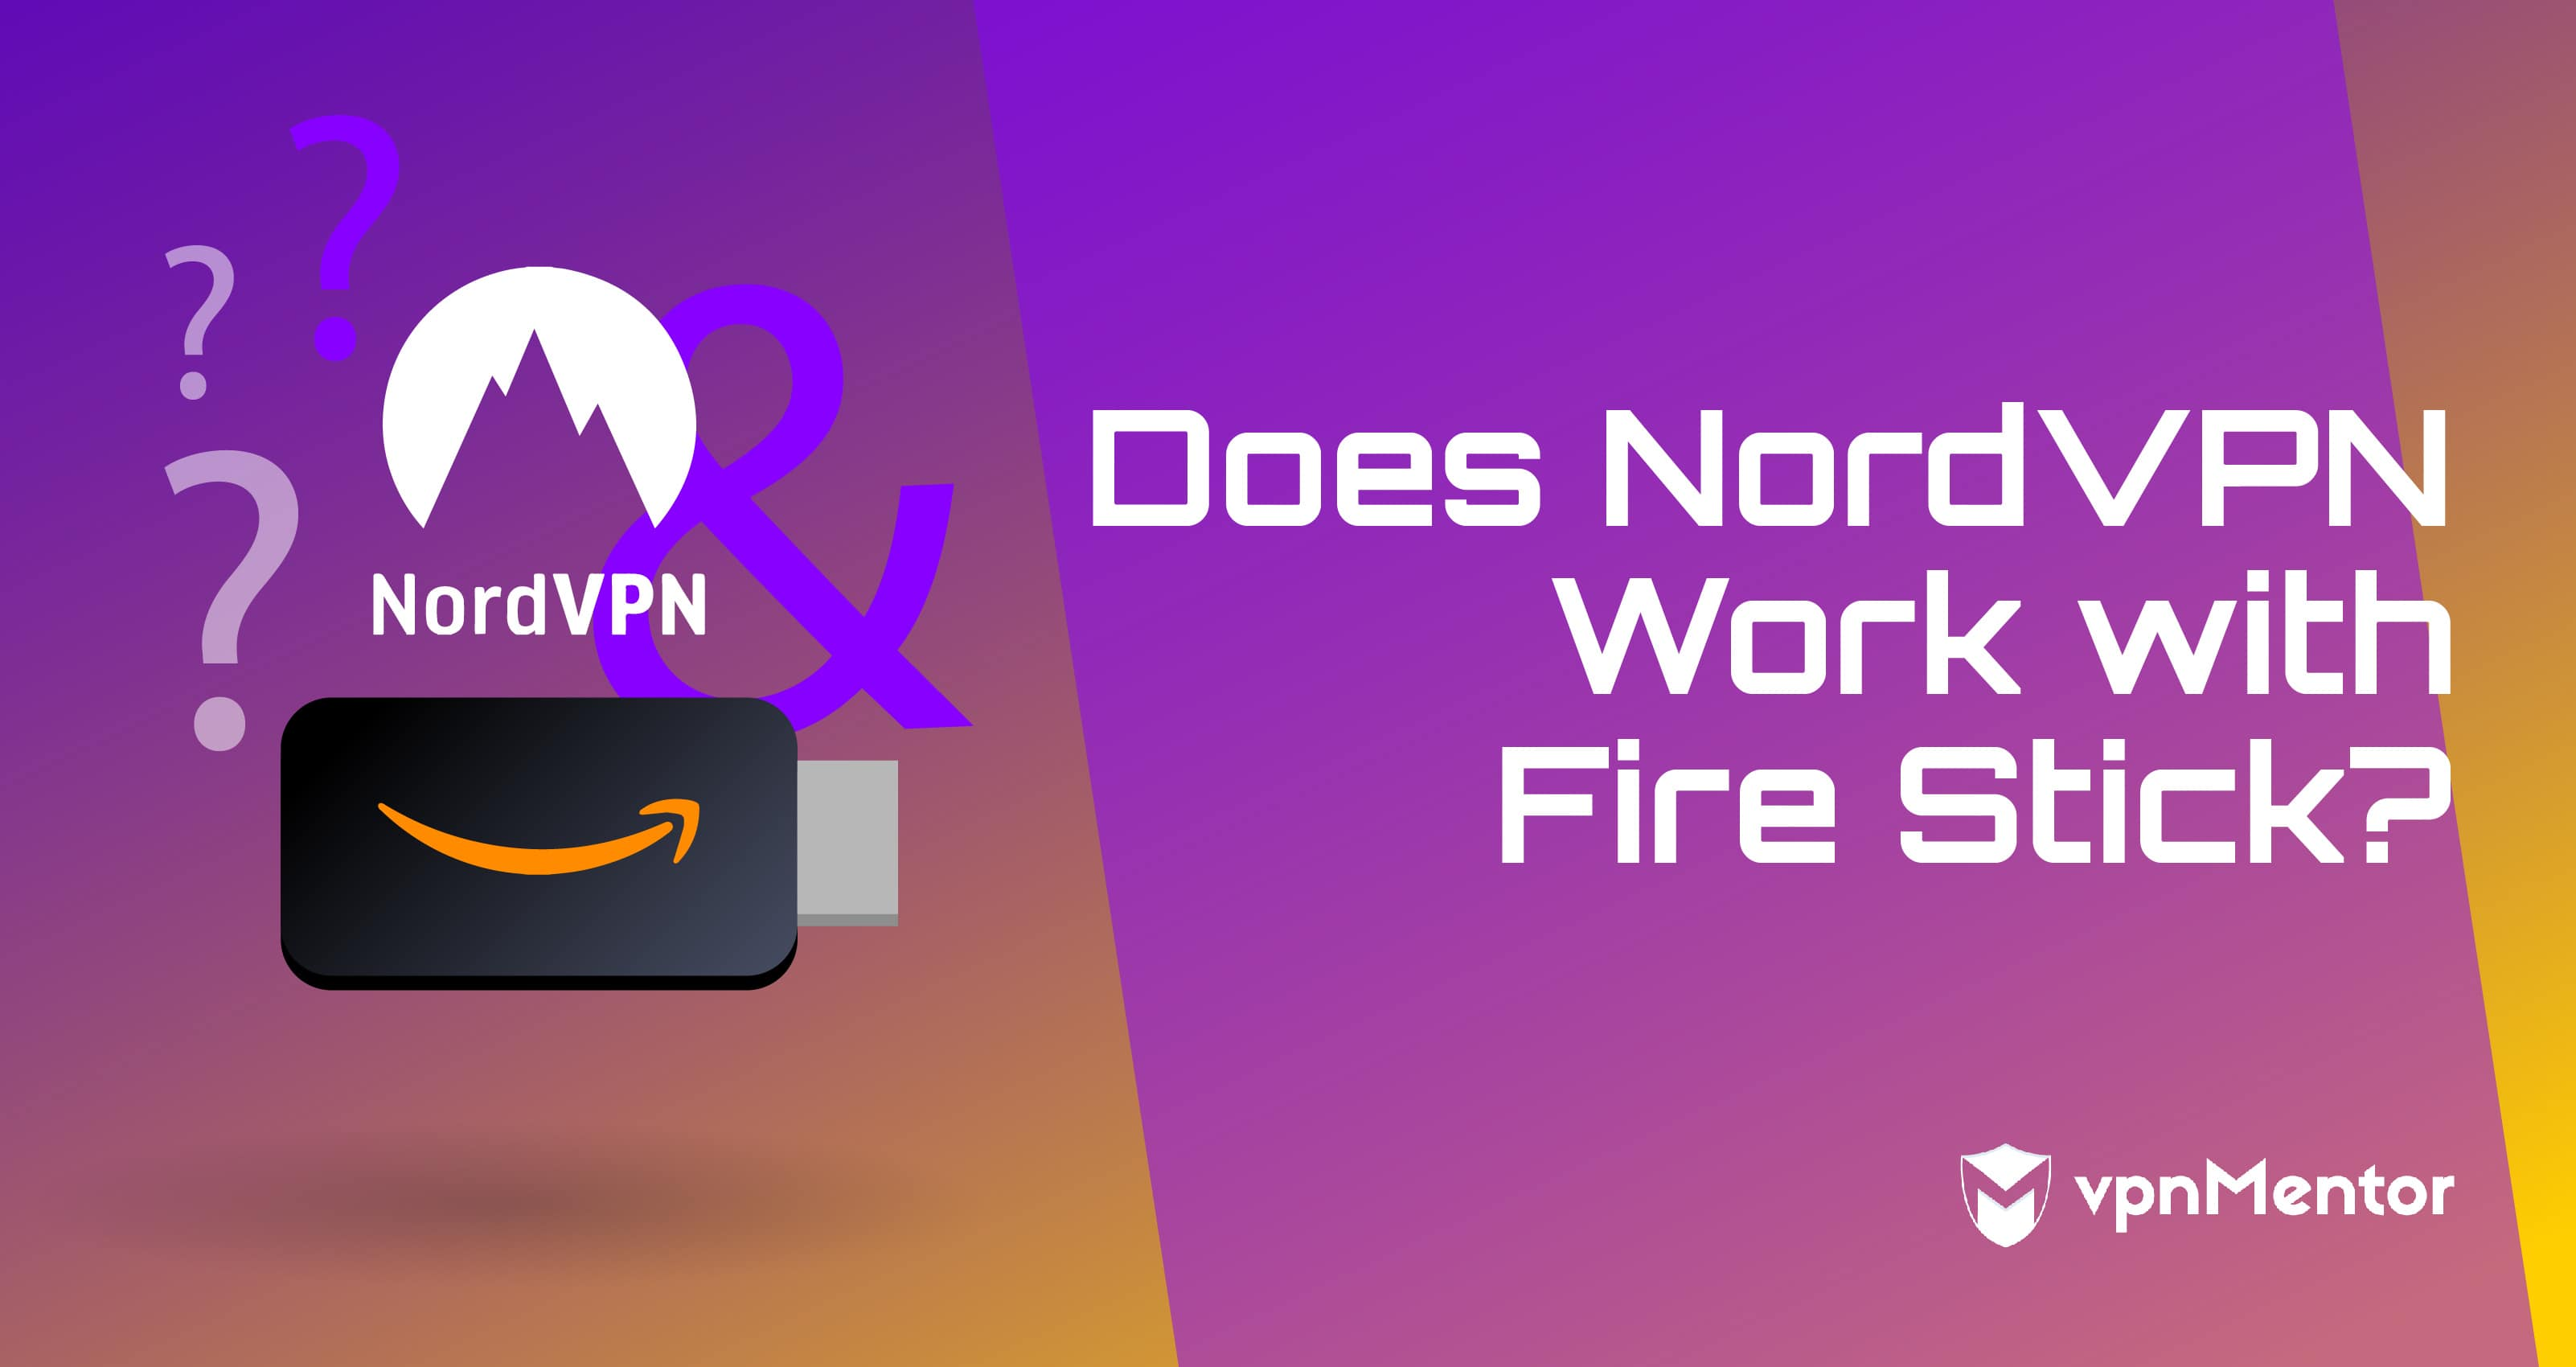 Does NordVPN Work with Amazon Fire Stick in 2019? Only If